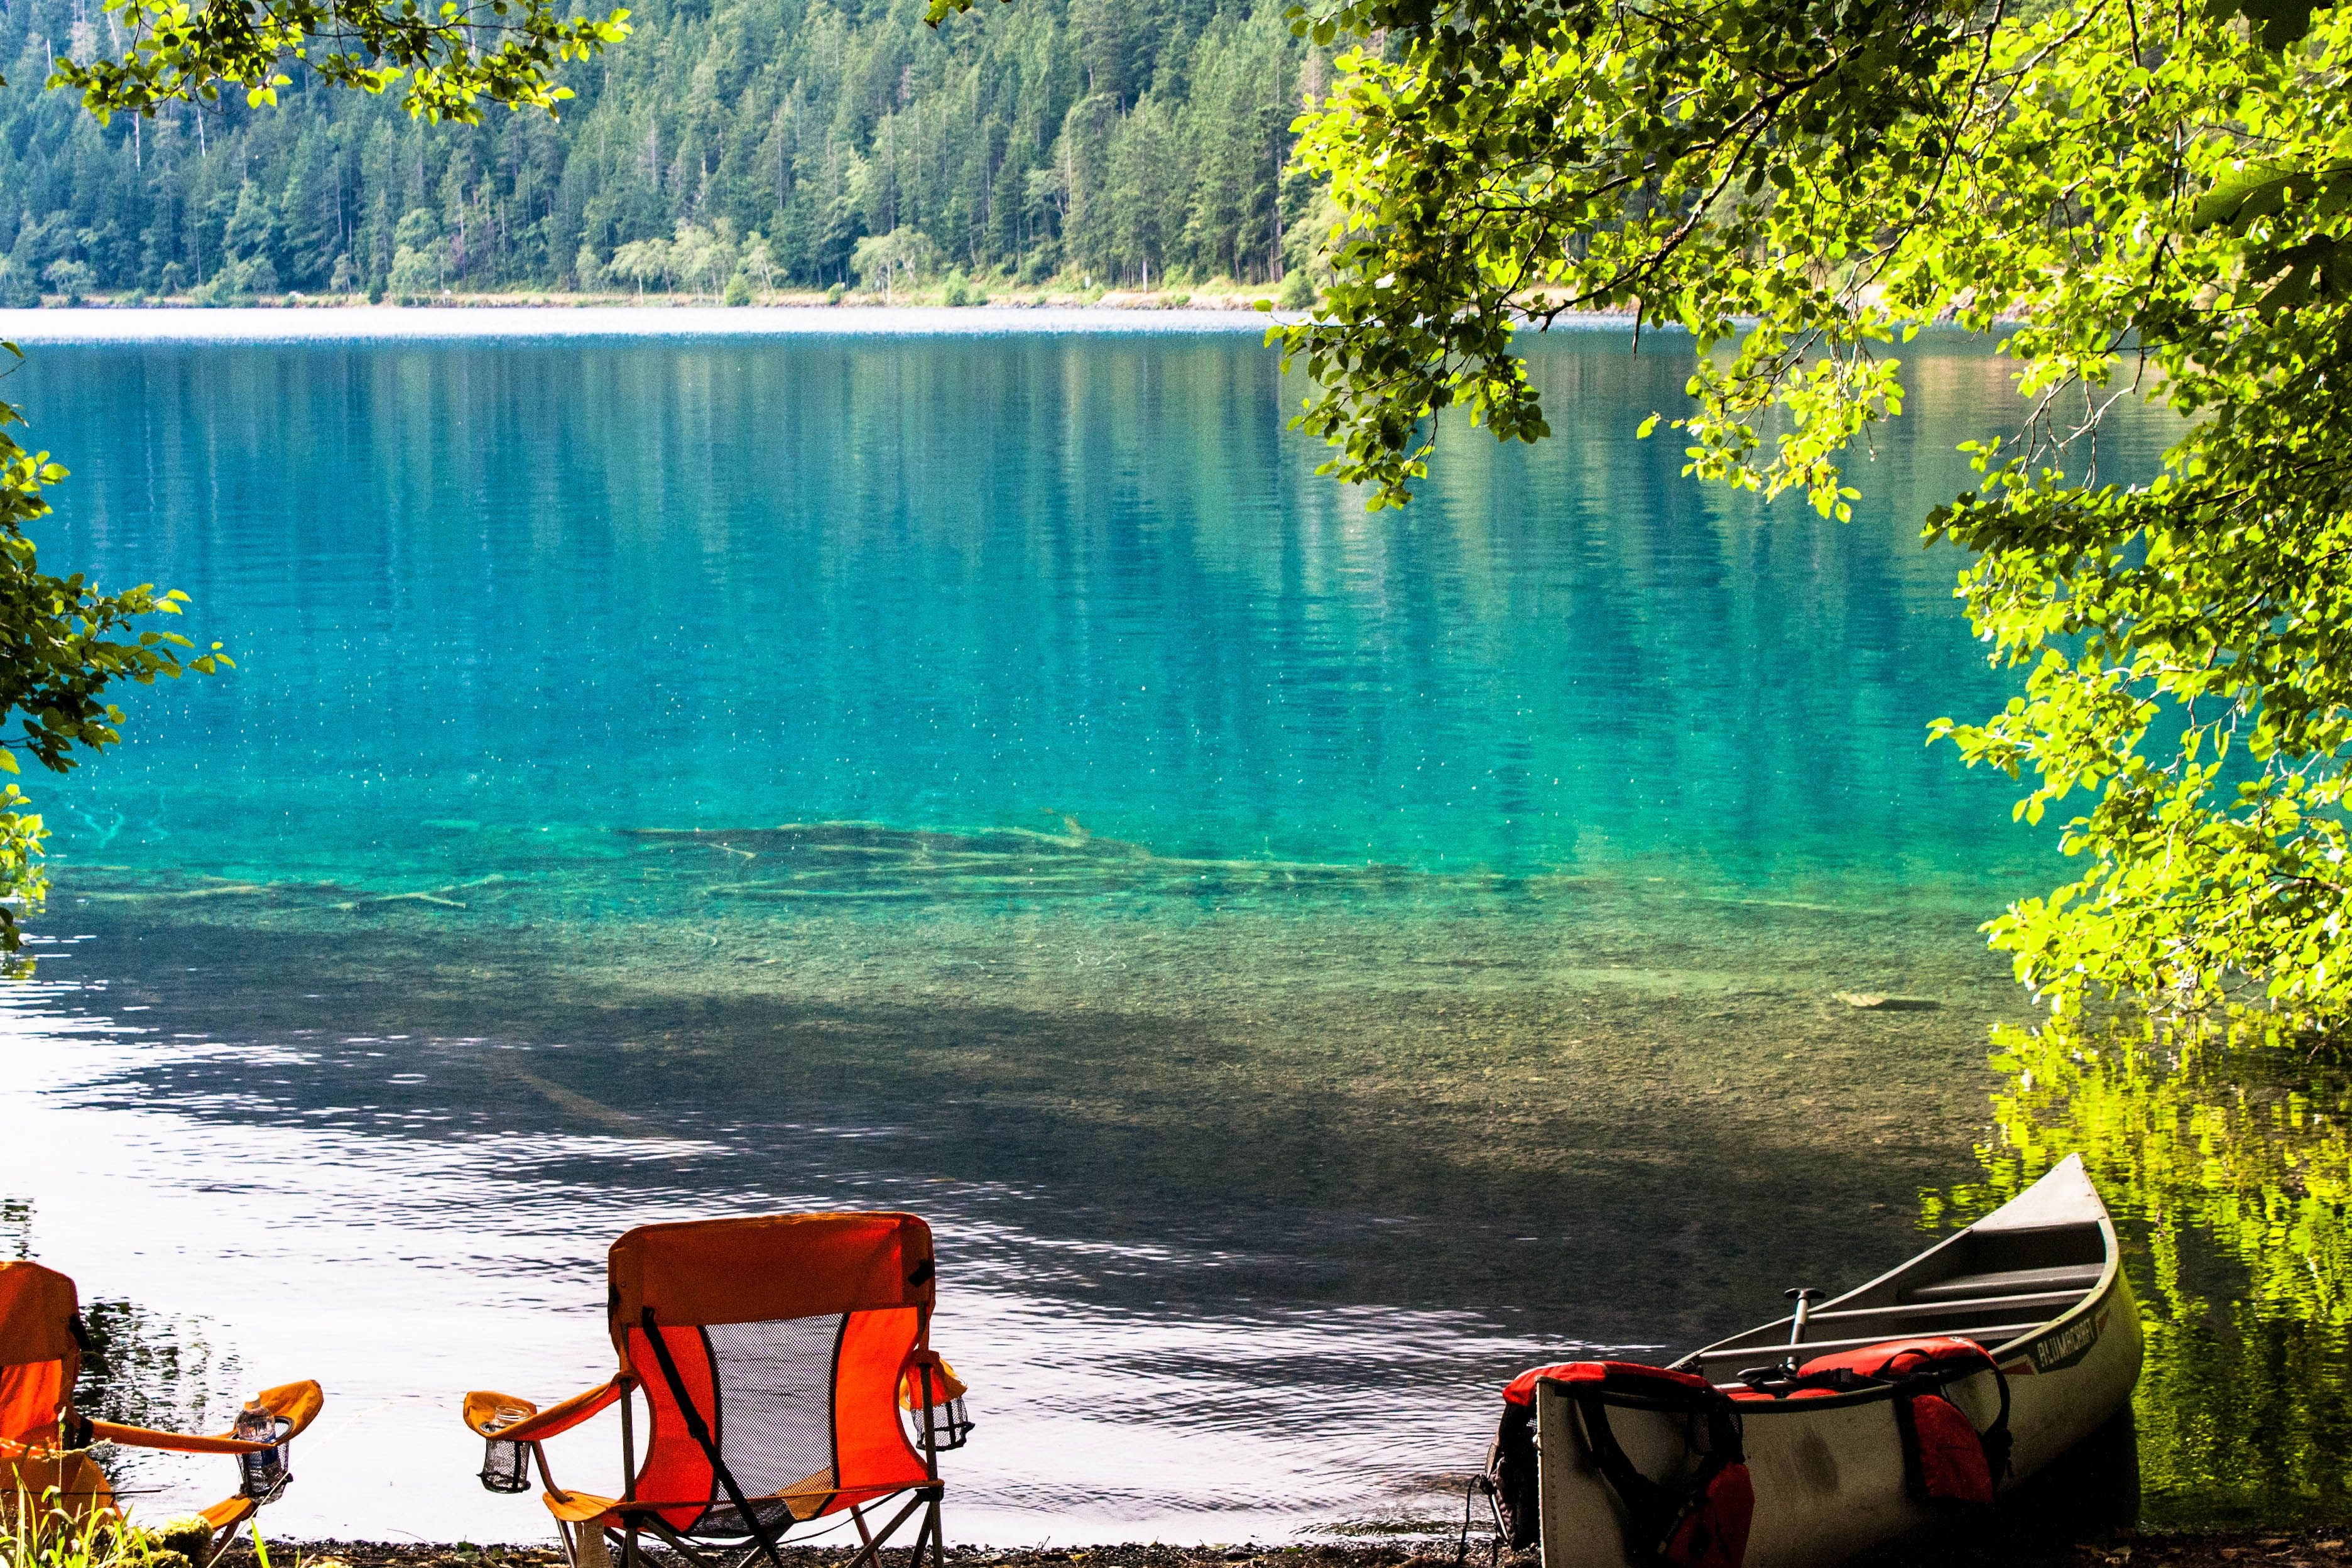 Camping at Lake Crescent in Fairholme, WA | My photography ...